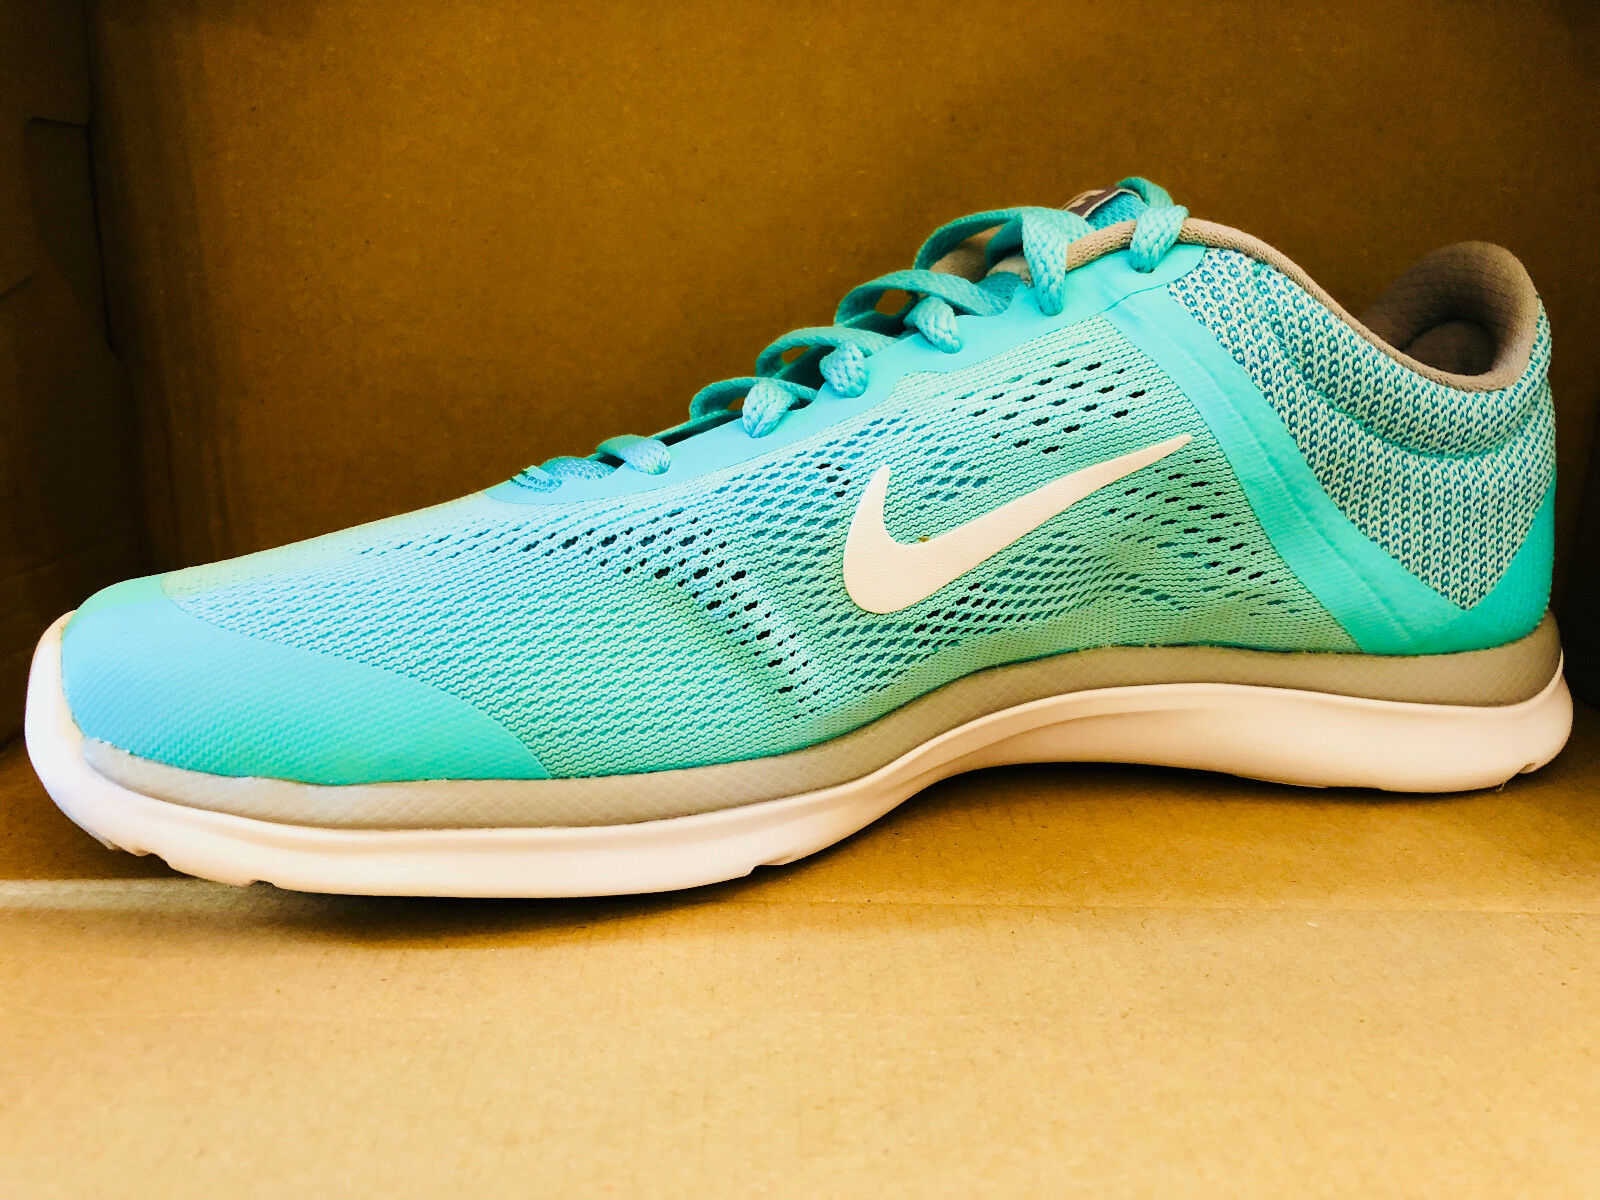 NIKE WOMEN'S IN-SEASON TR 5 SHOES hyper turquoise white grey 807333 301 1